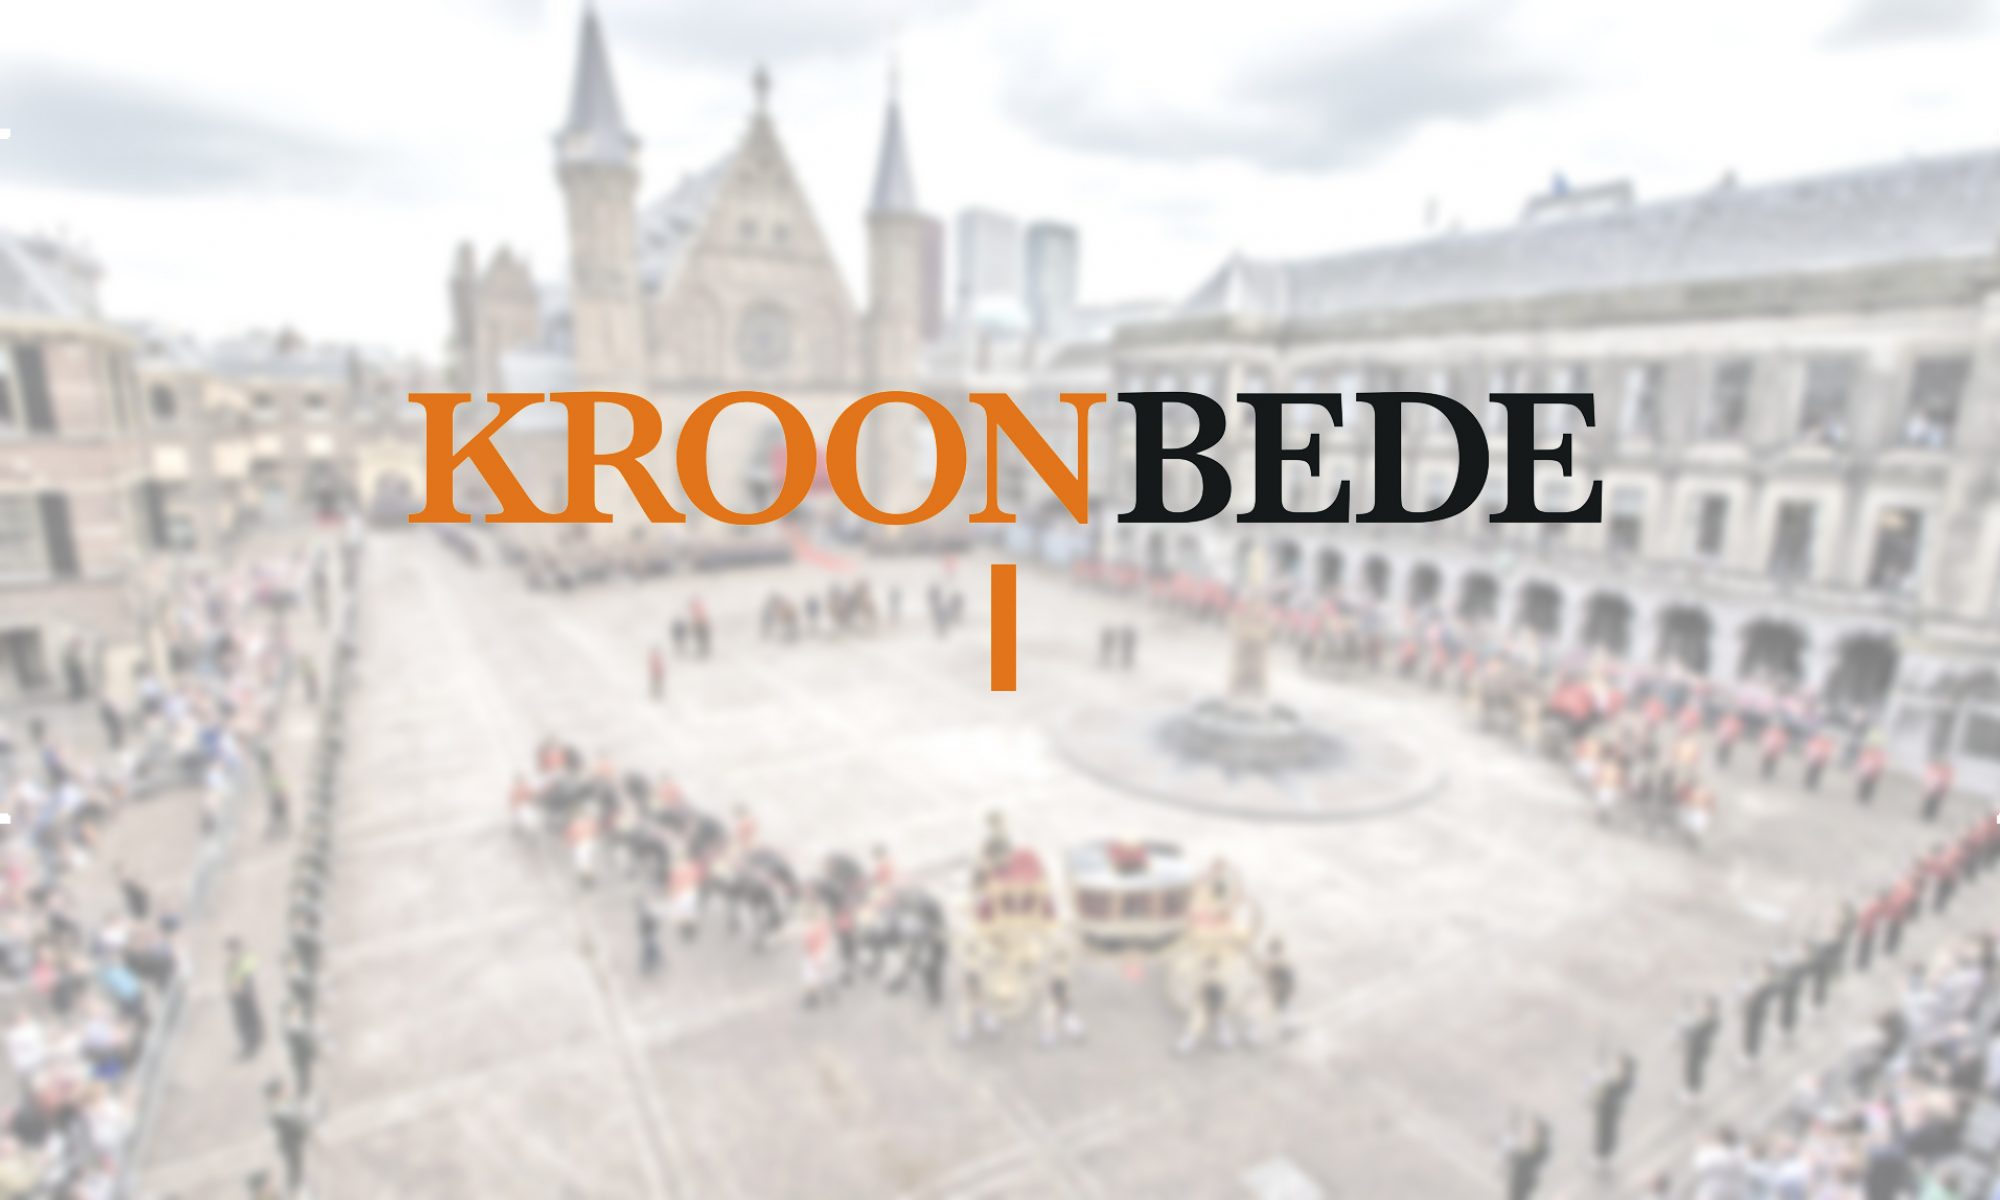 Kroonbede: 8 september 2020